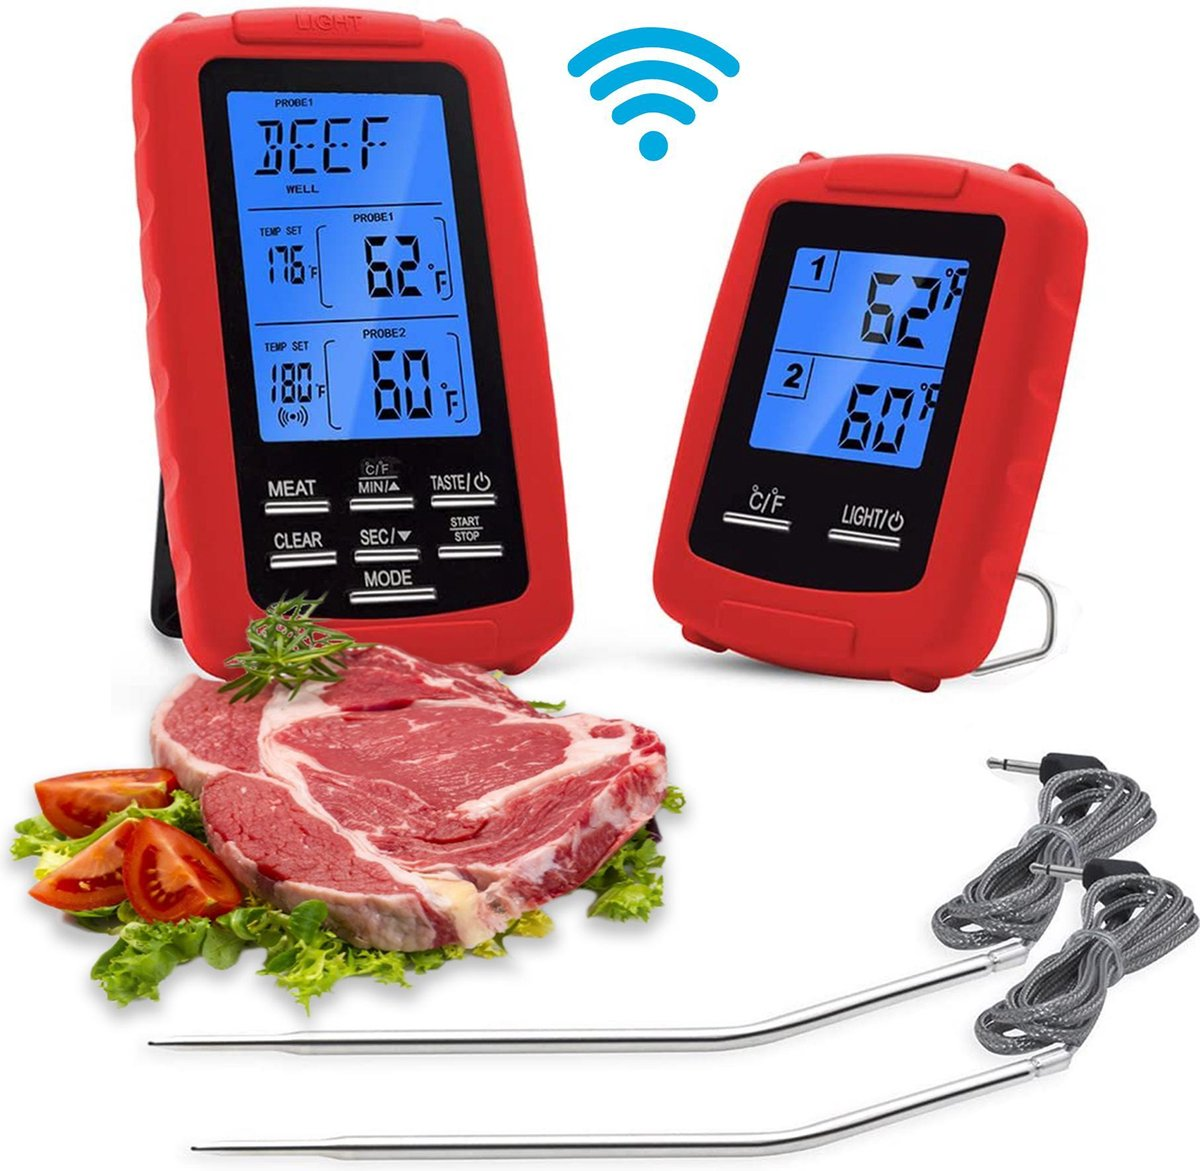 Vleesthermometer Digitaal BBQ Thermometer Draadloos - Kernthermometer - Oventhermometer - Meater